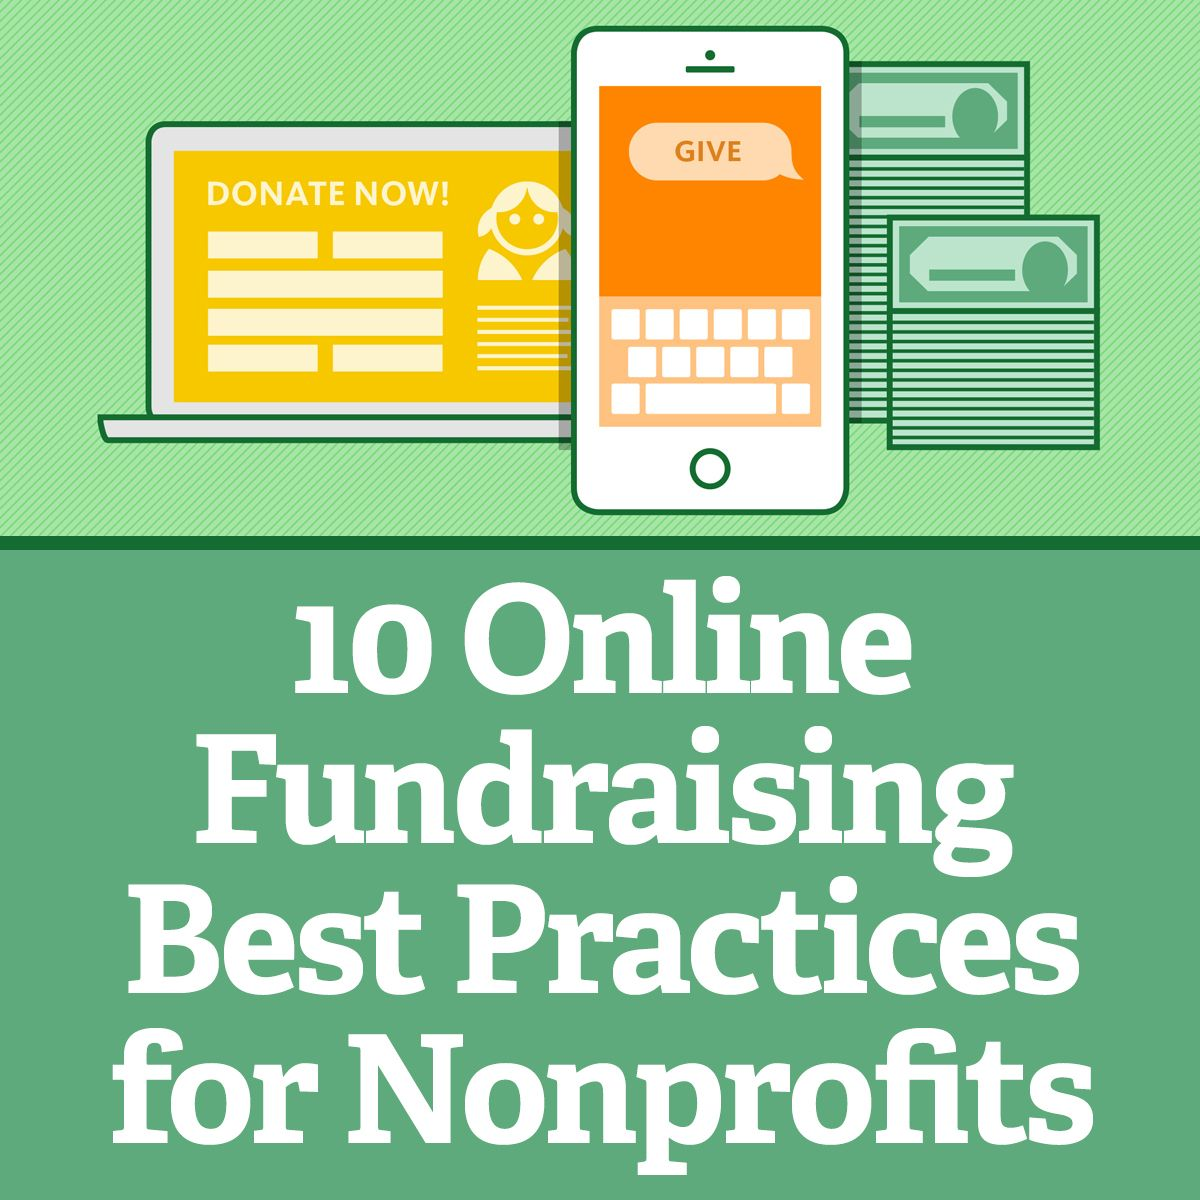 10 Online Fundraising Best Practices For Nonprofits Online Fundraising Fundraising Fundraising Email